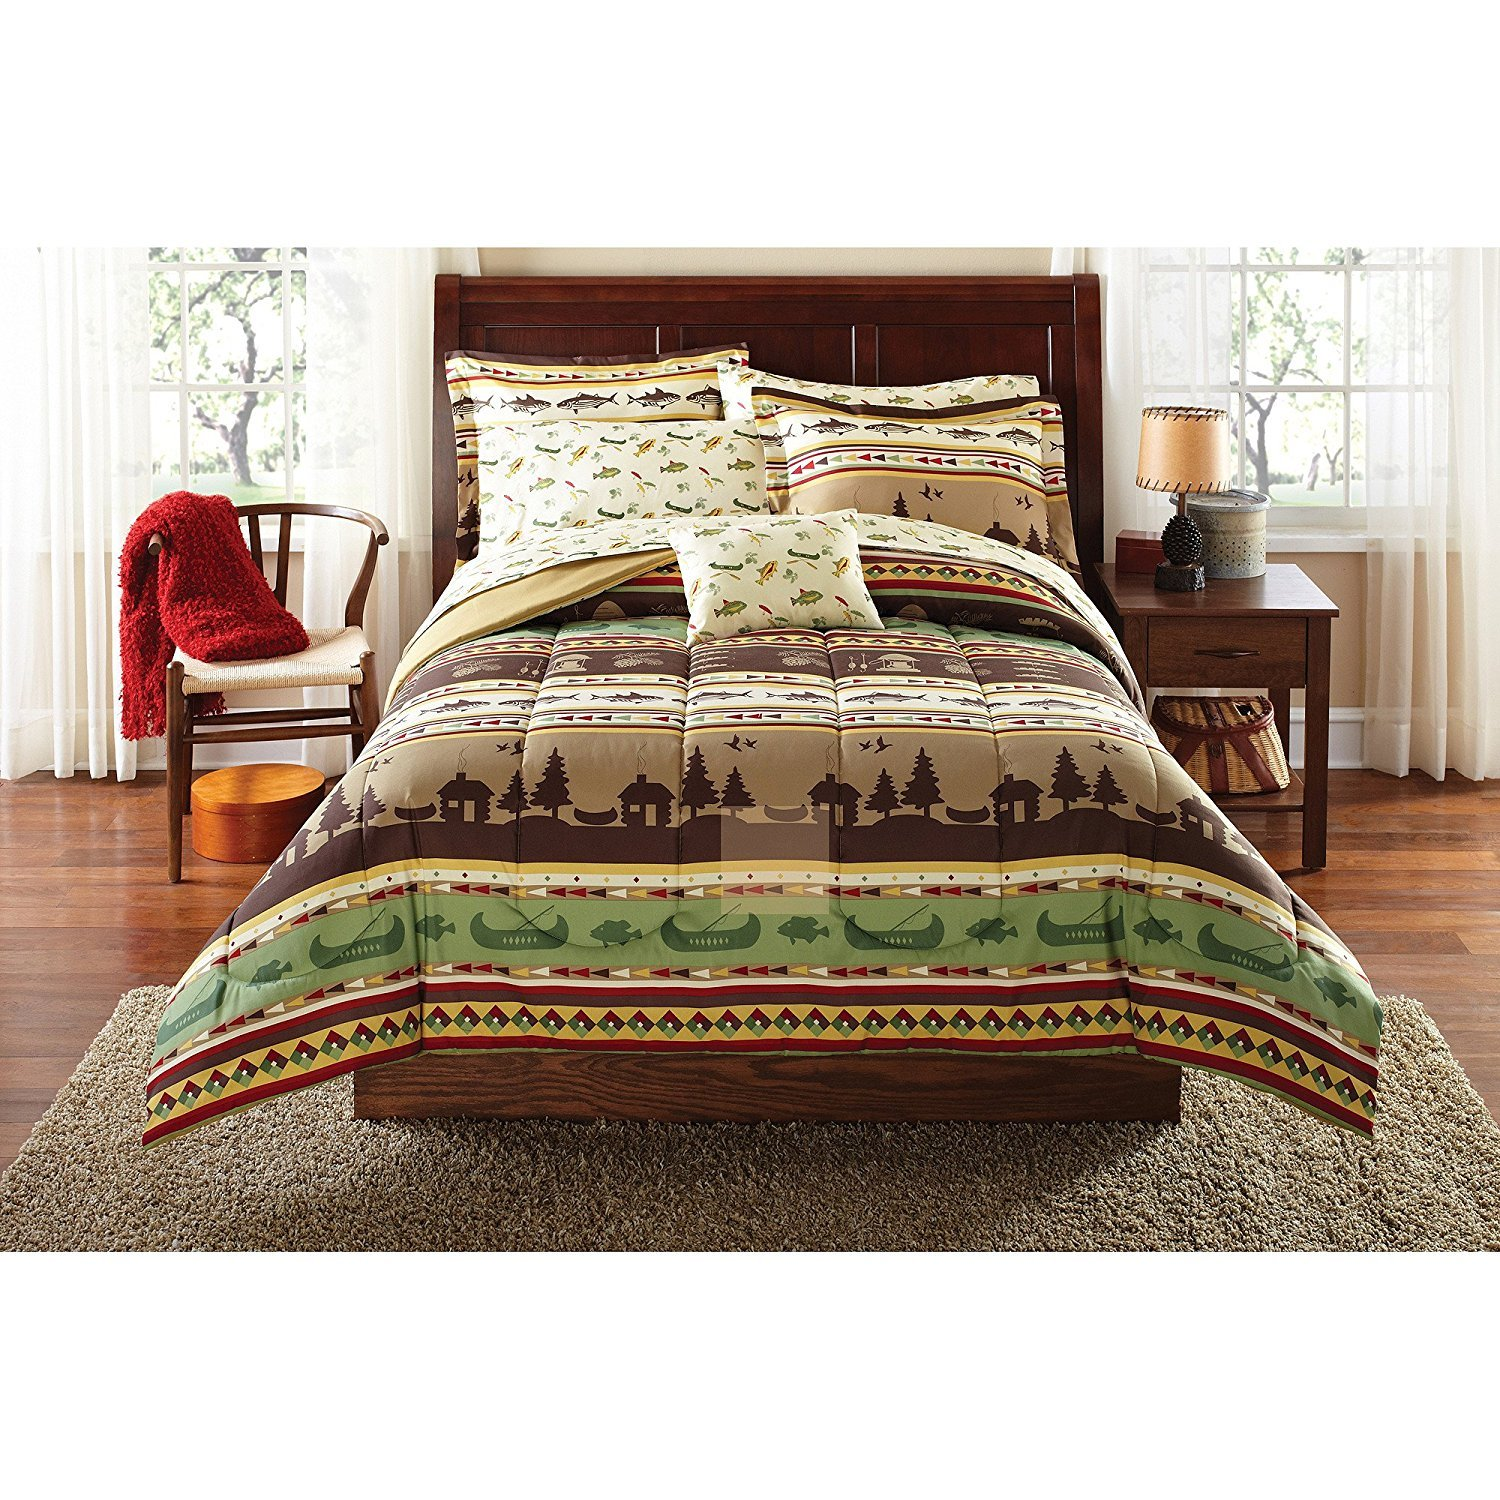 OSD 6pc Brown Green Fishing Stripes Theme Comforter TwinXL Set, Cabin Lodge Hunting Pattern, Vibrant Colors, Geometric Patchwork Striped Inspired, Boats, Sea Animals Bedding by OSD (Image #1)